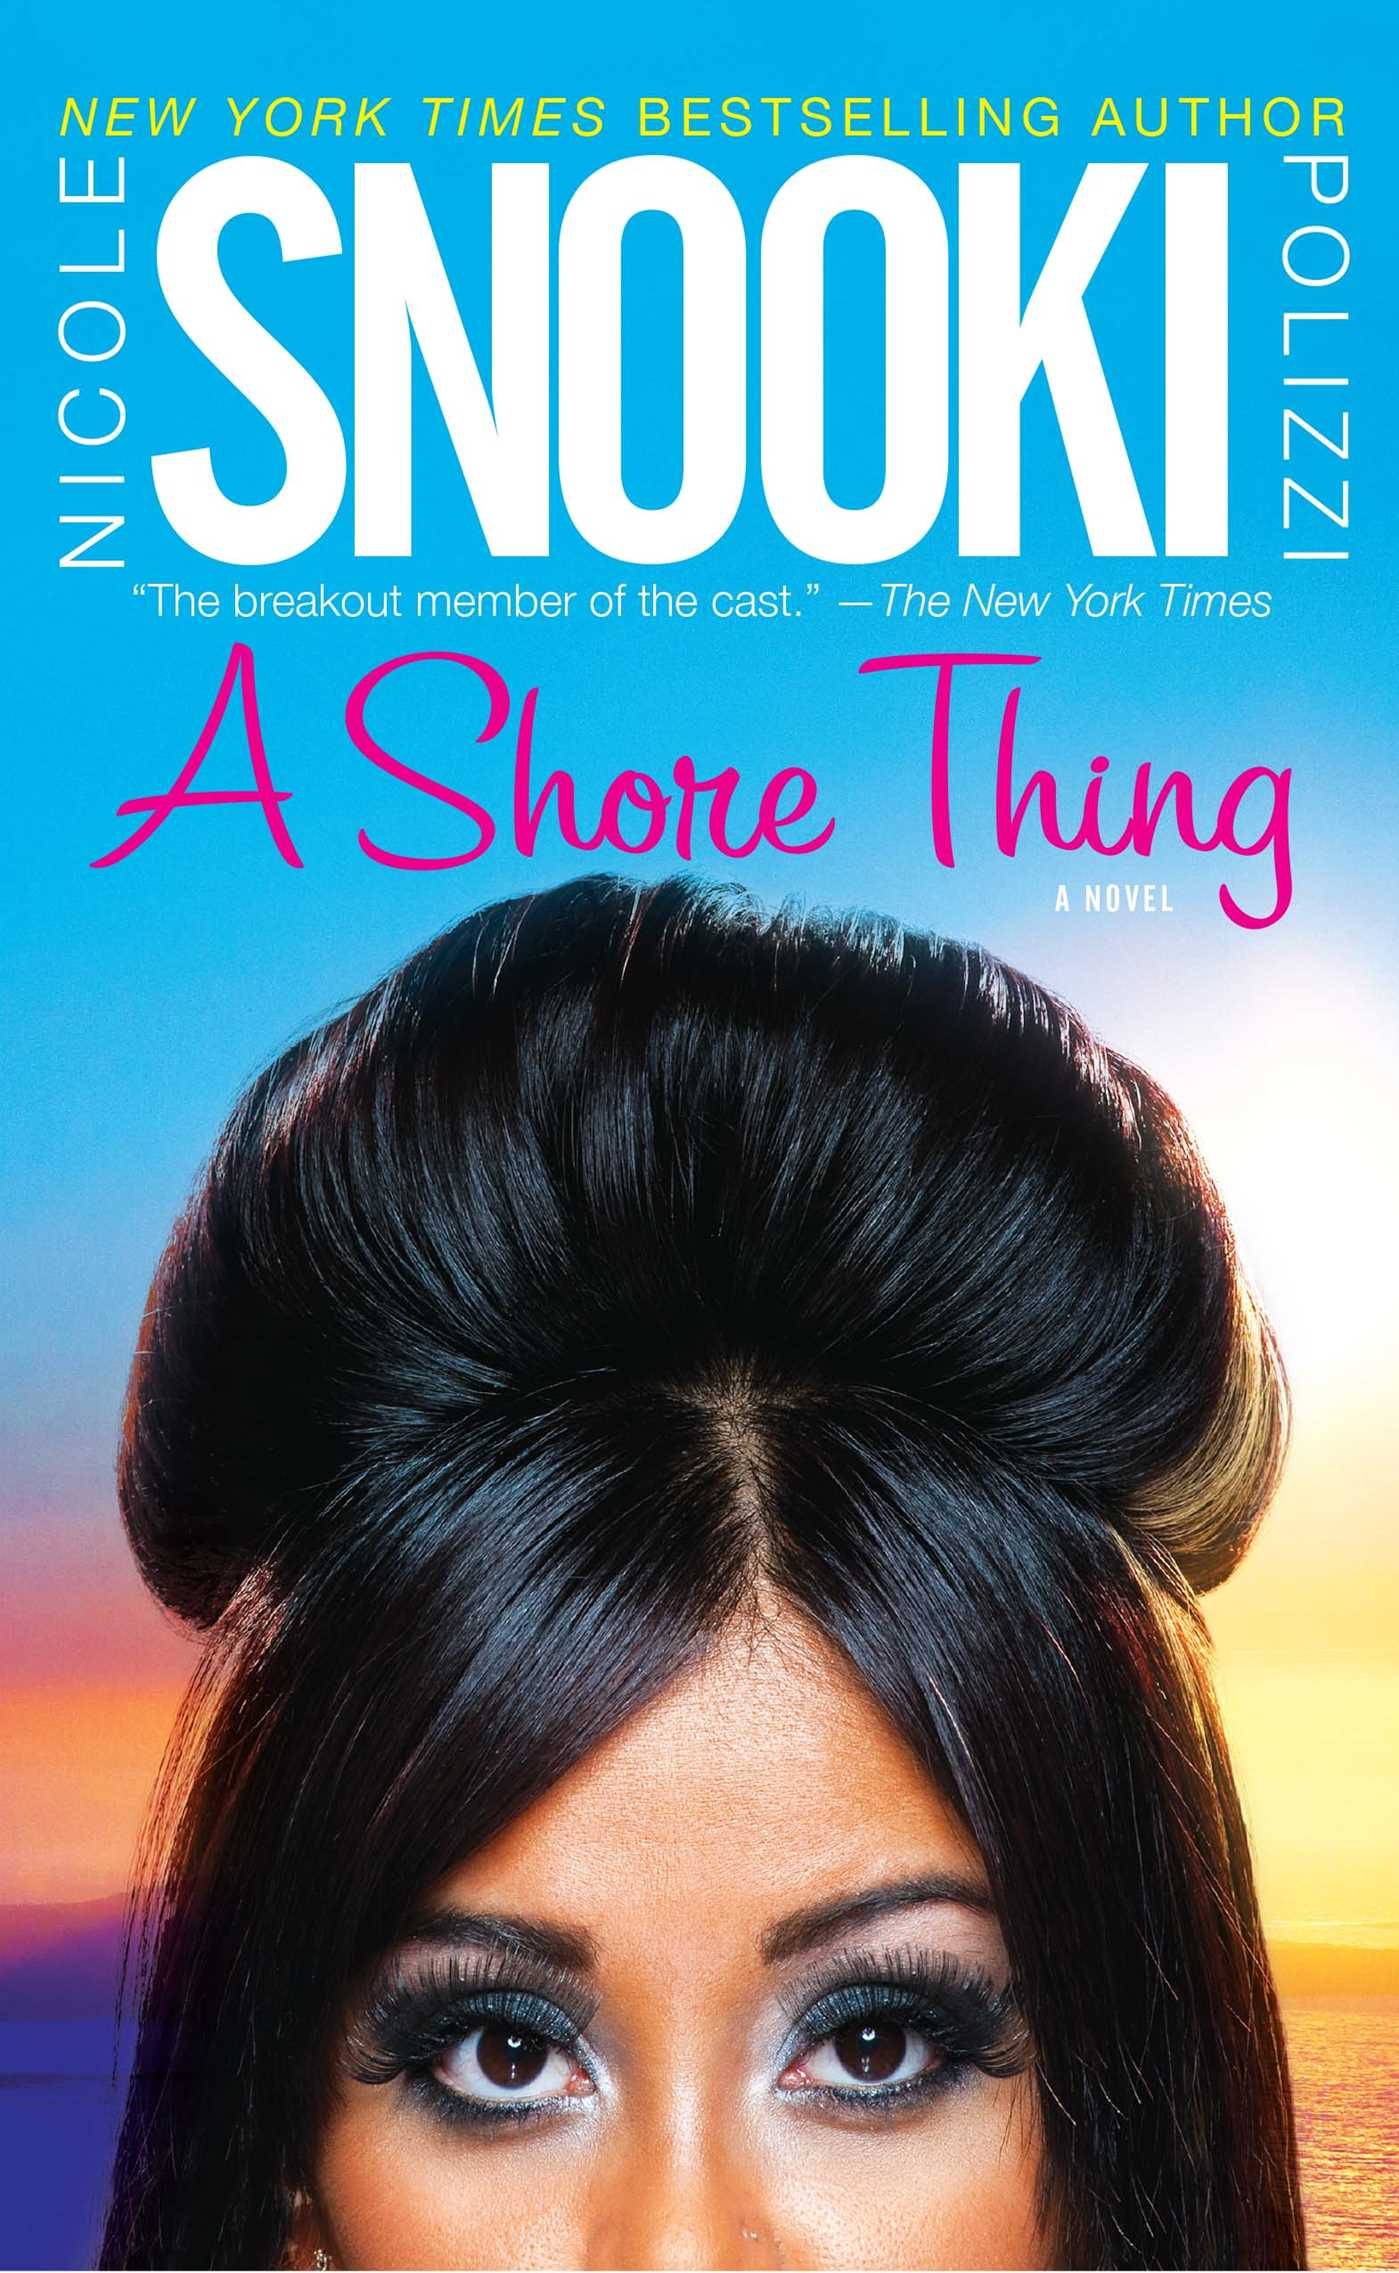 A-shore-thing-9781451623758_hr